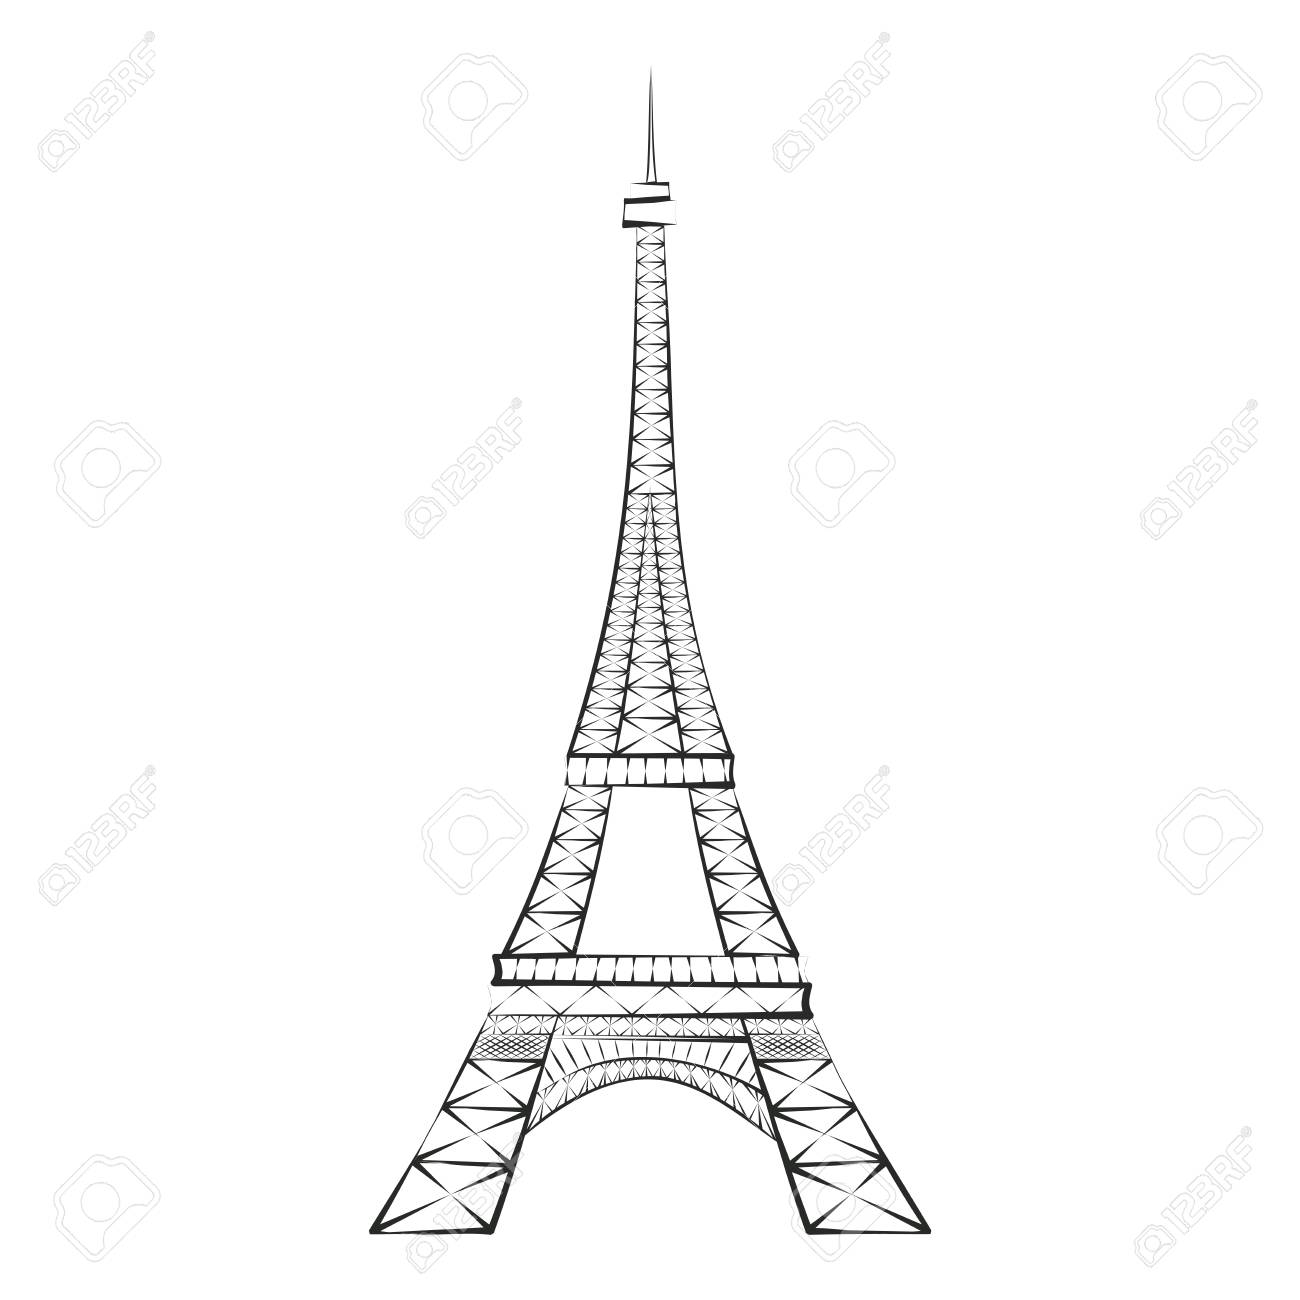 Black silhouette Eiffel Tower, Paris, isolated on white background.